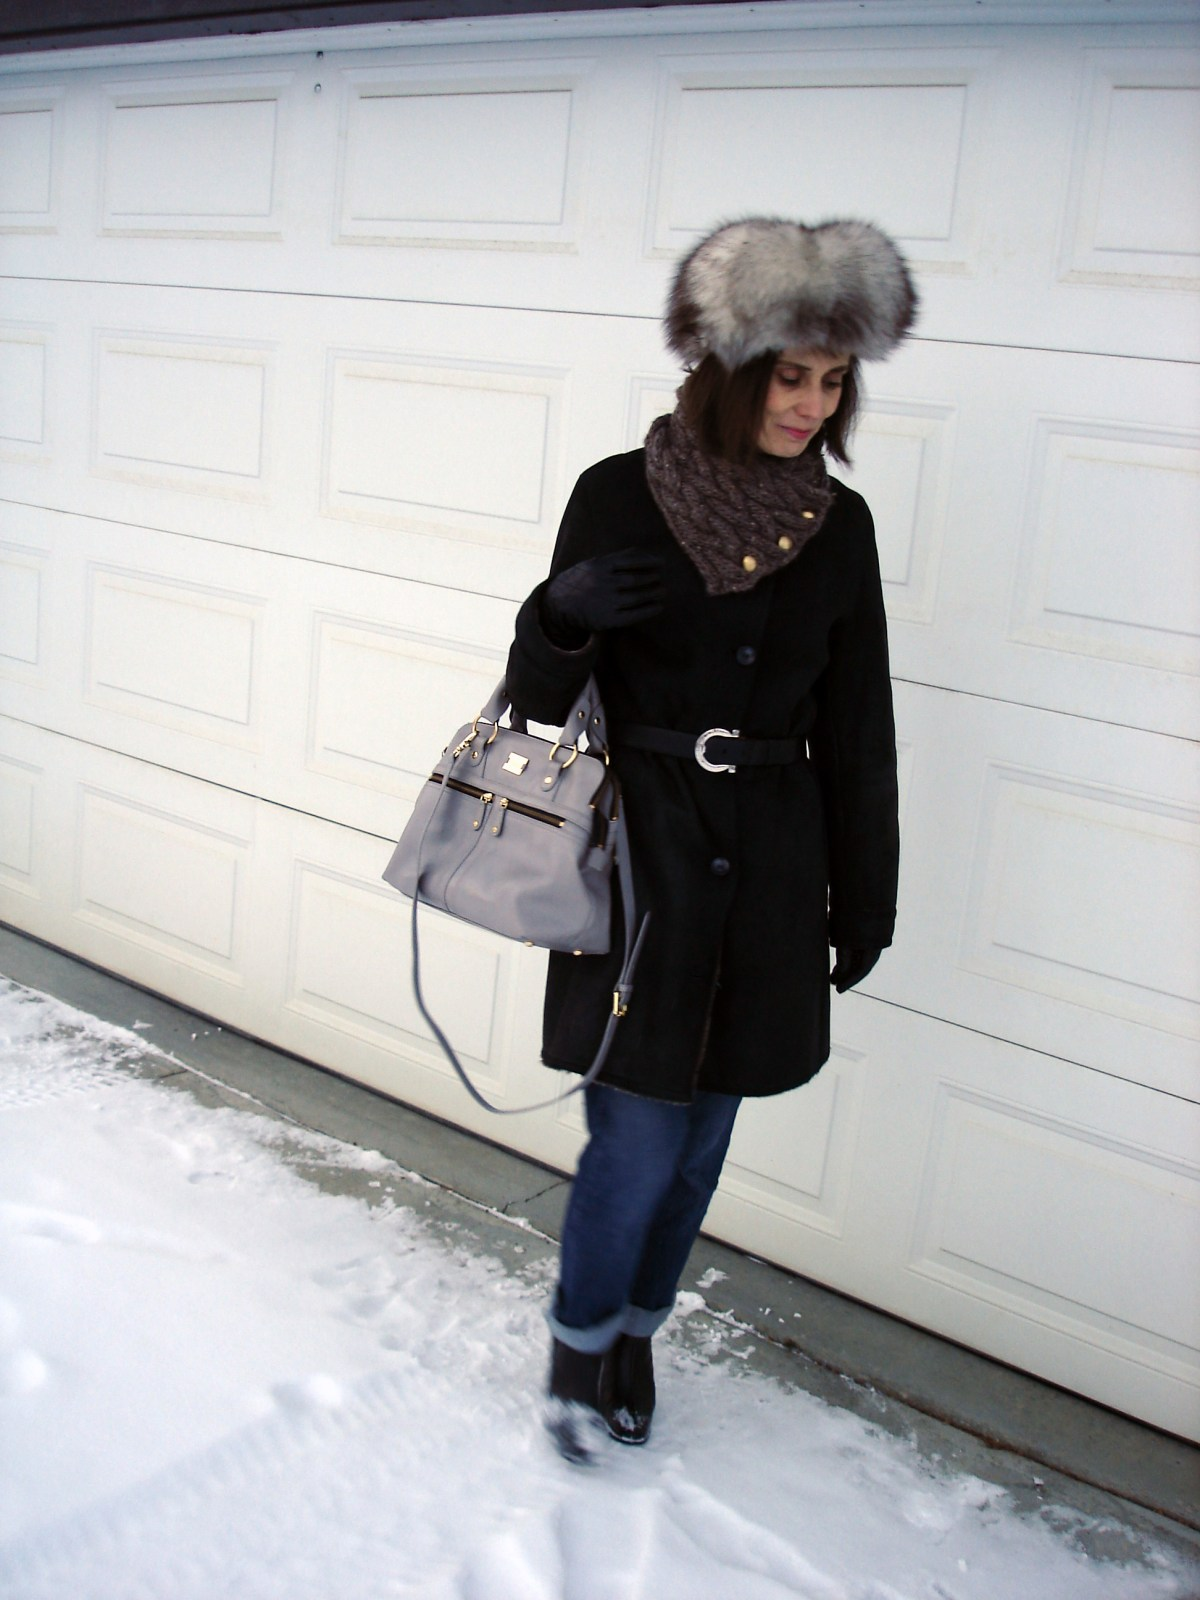 #over40fashion posh winter outerwear with Russian hat